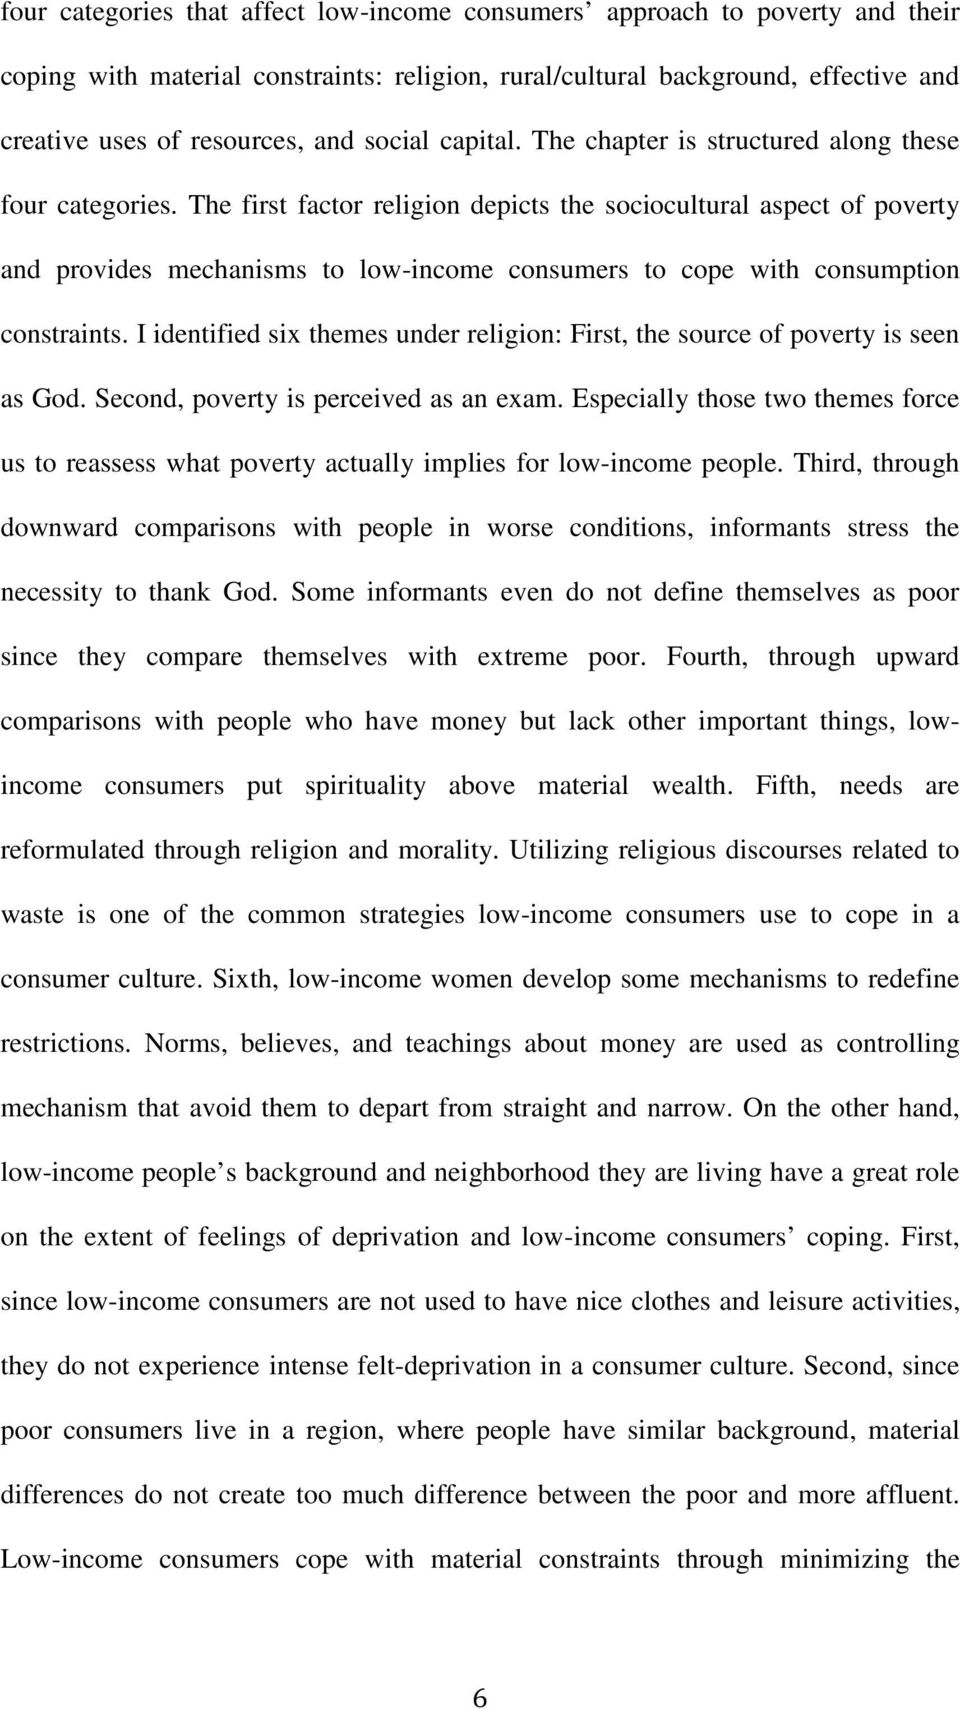 The first factor religion depicts the sociocultural aspect of poverty and provides mechanisms to low-income consumers to cope with consumption constraints.